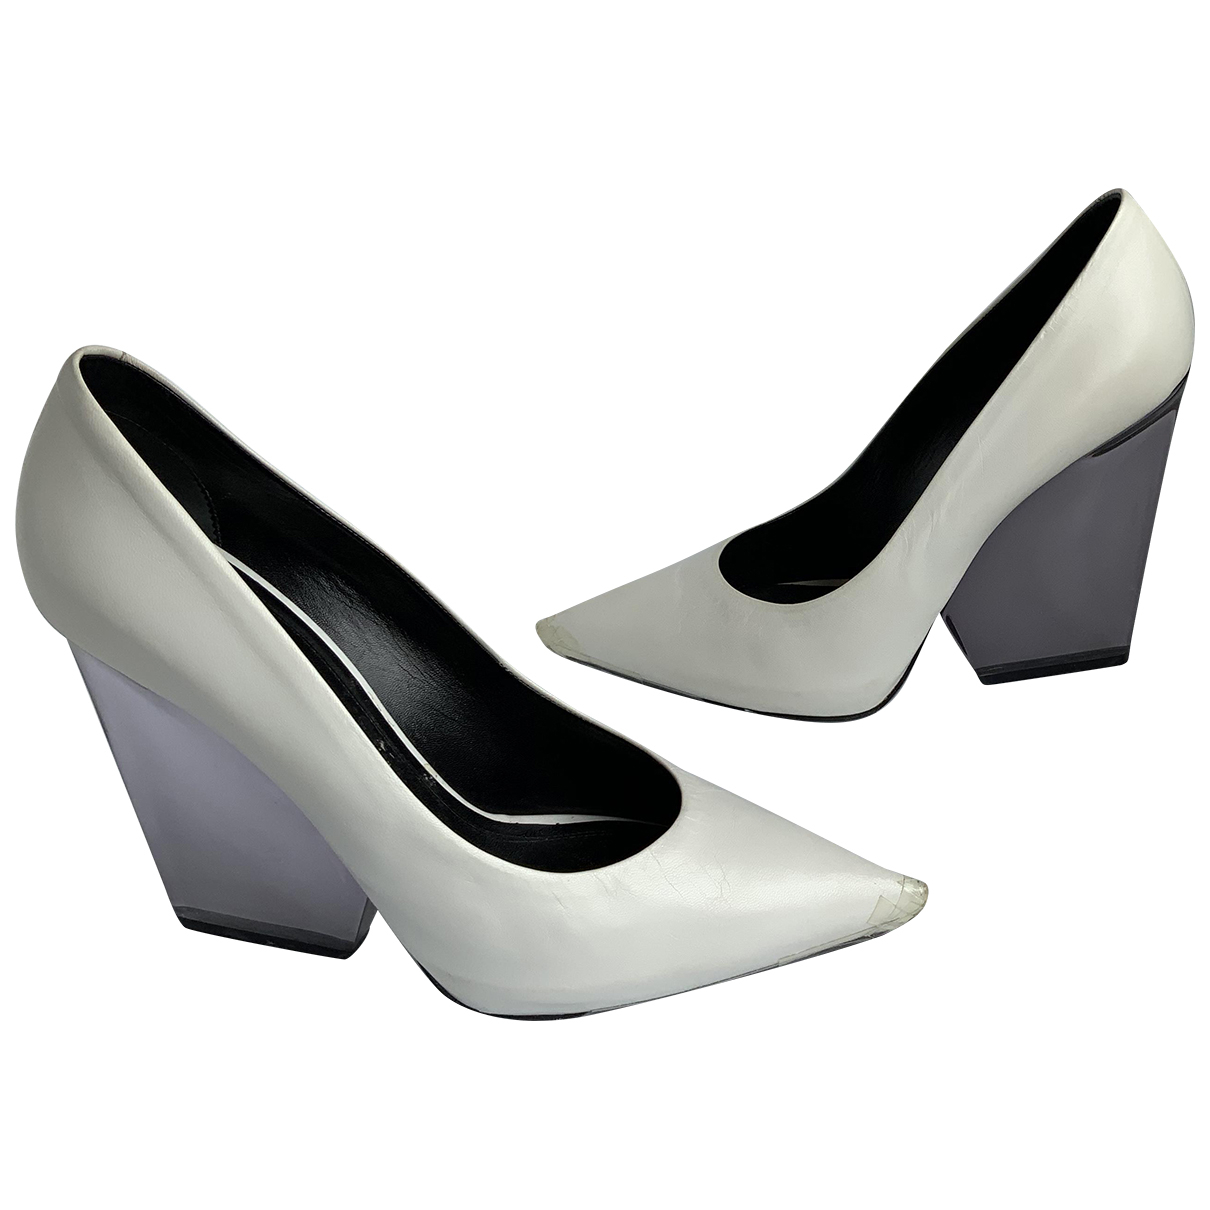 Celine \N Pumps in  Weiss Leder